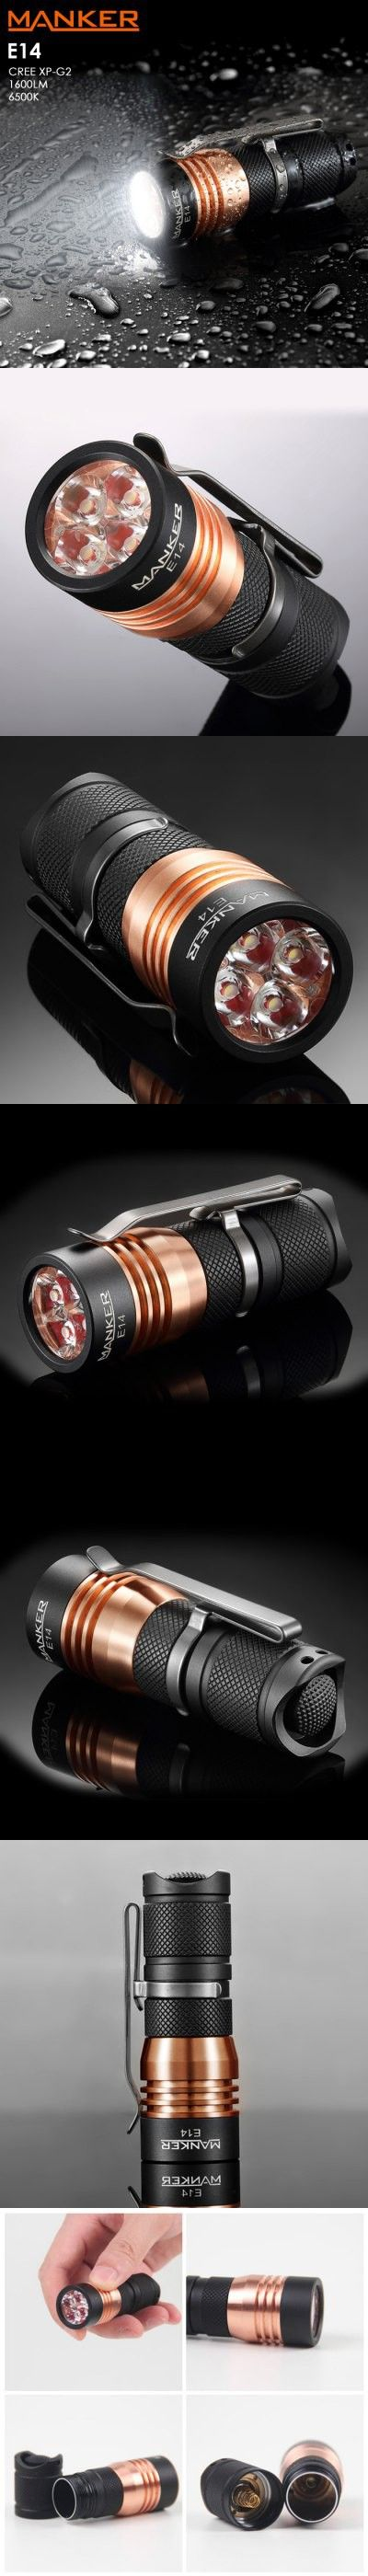 LED Flashlights | Manker E14 Mini EDC LED Flashlight $39.90